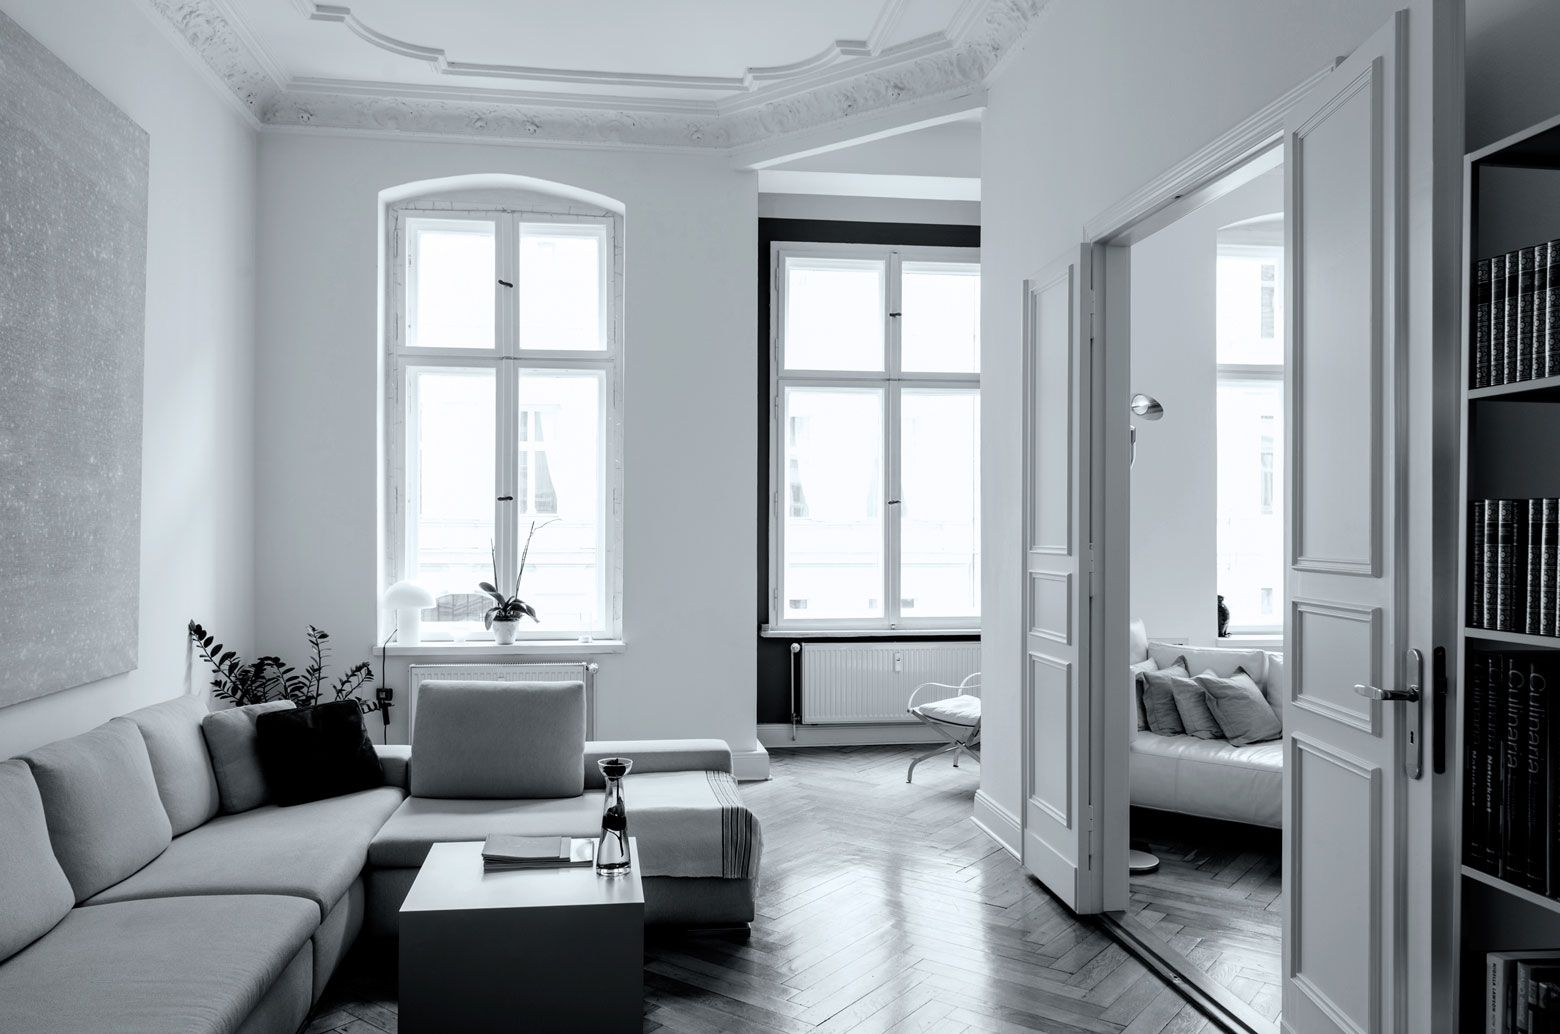 If you ar looking for a luxury accommodation in Berlin - or if only for inspiration. Great designed apartments!